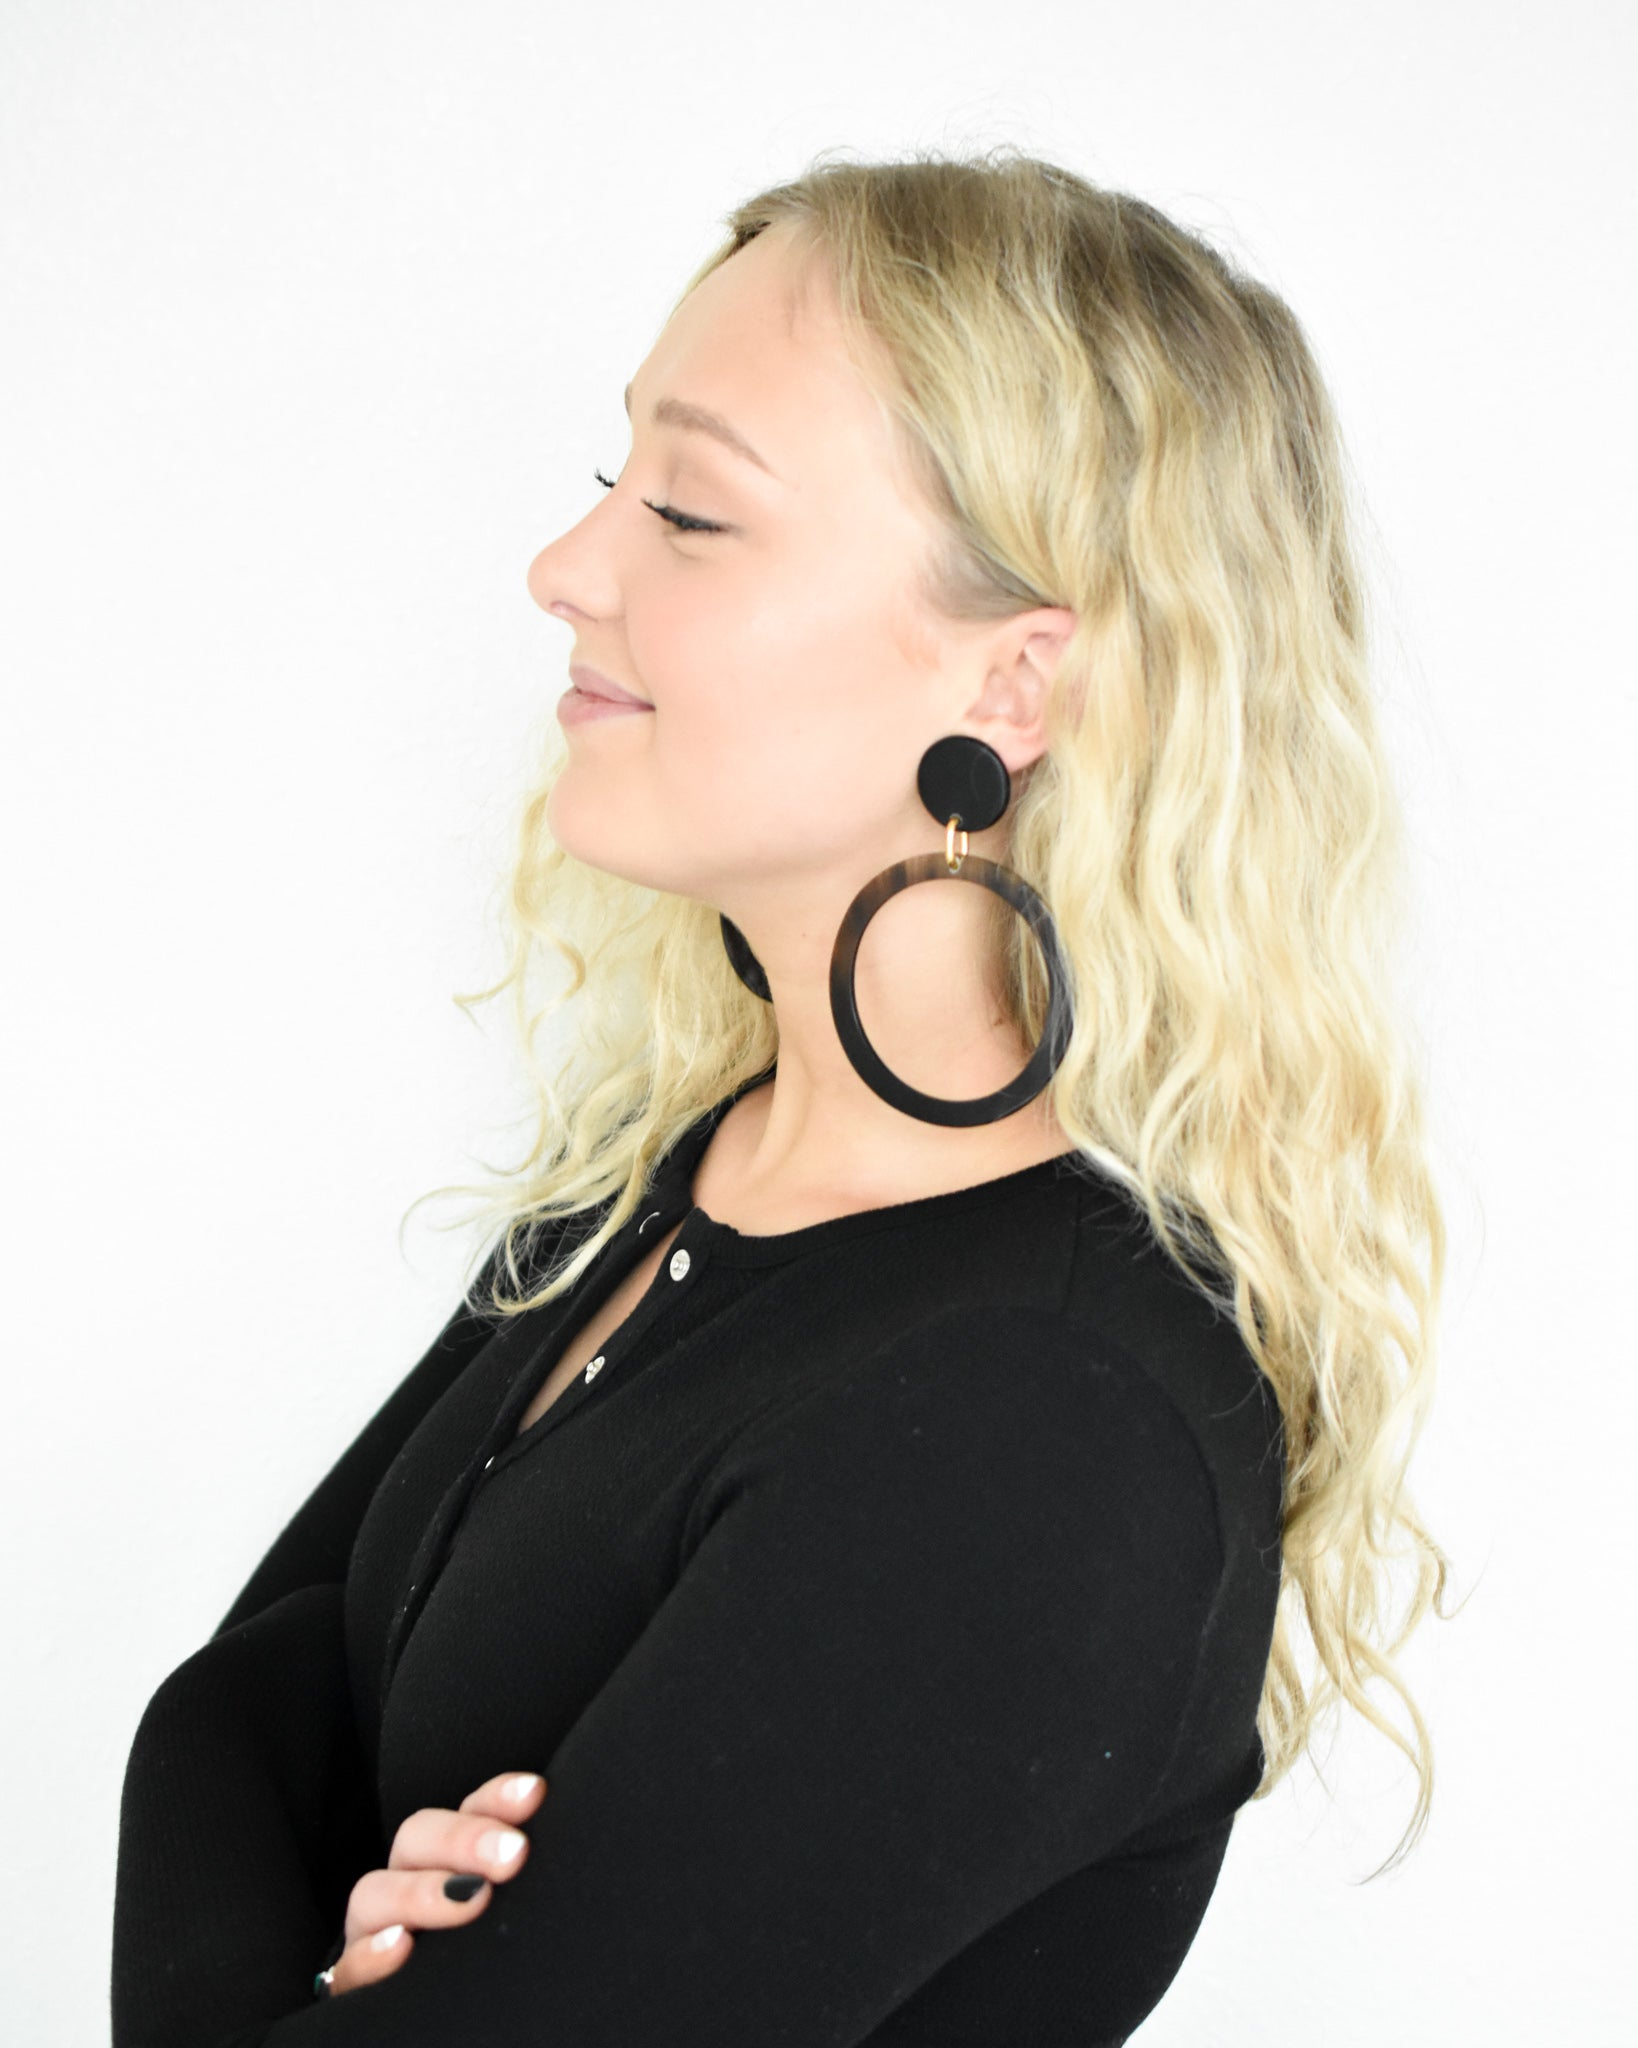 Erica Earrings || Choose Style